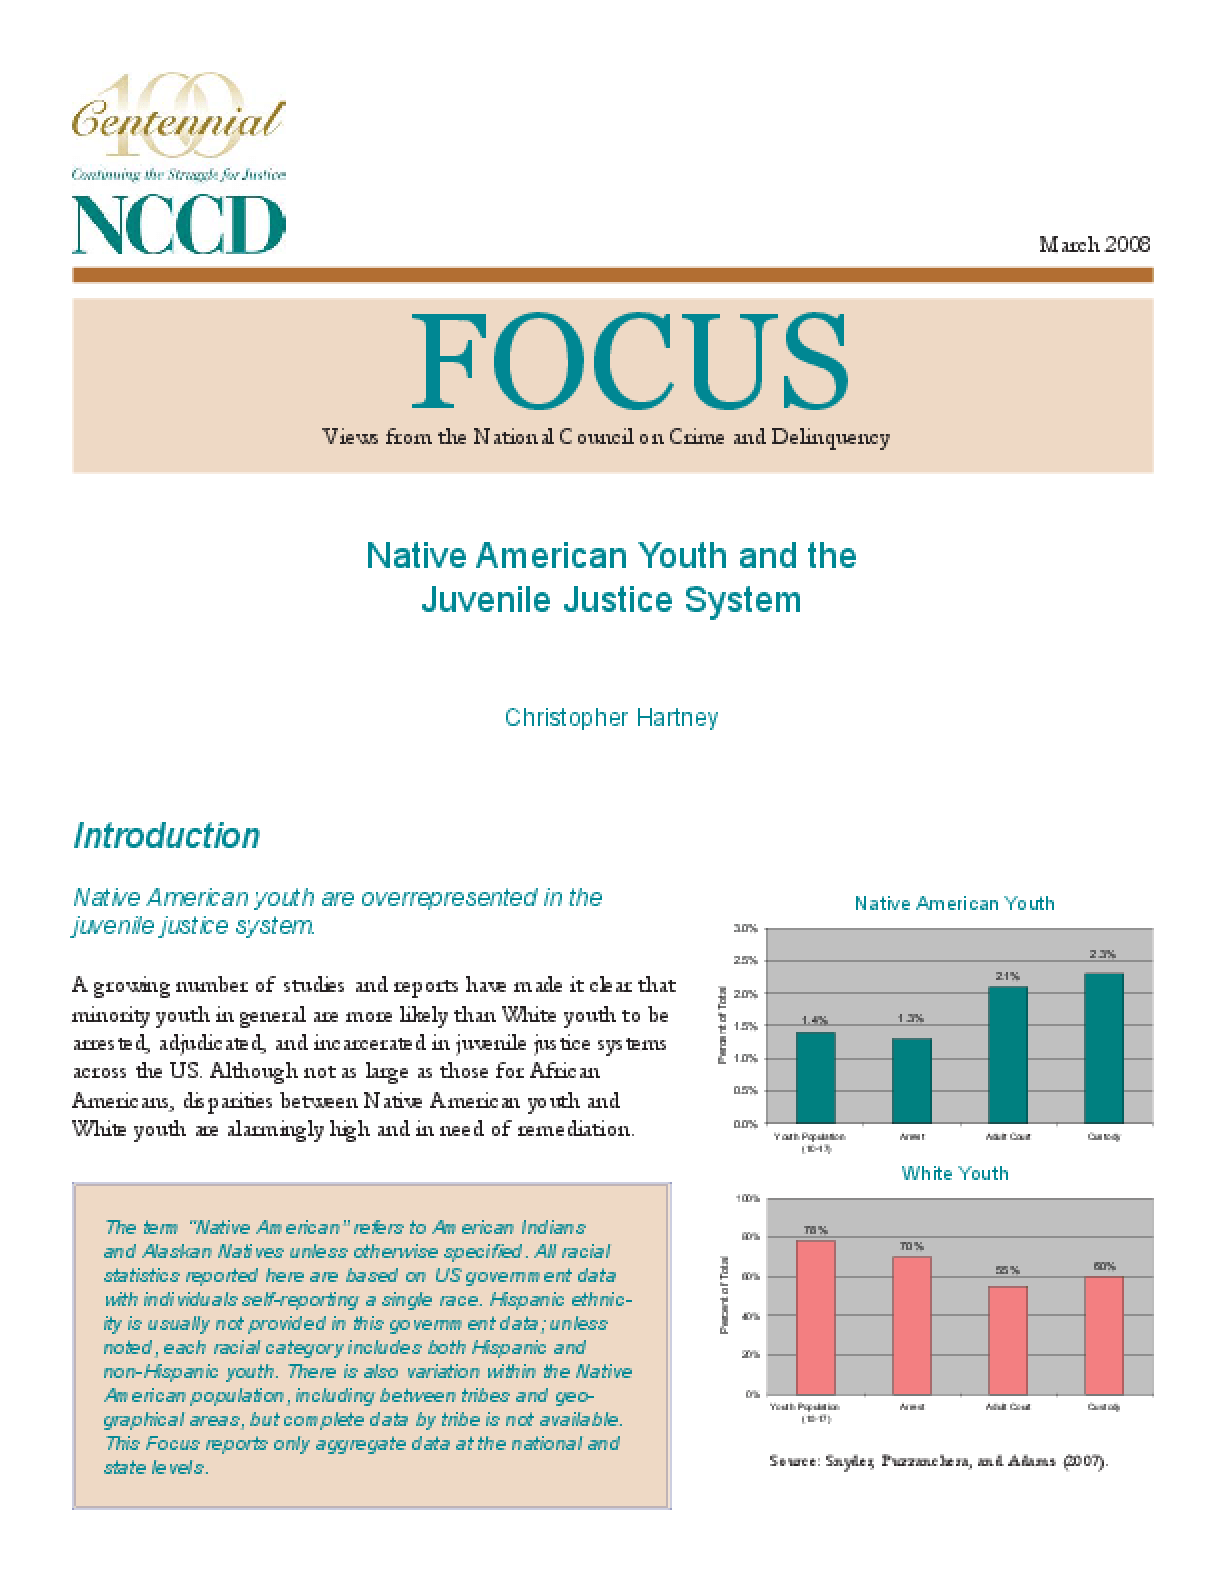 Native American Youth and Juvenile Justice System (FOCUS)